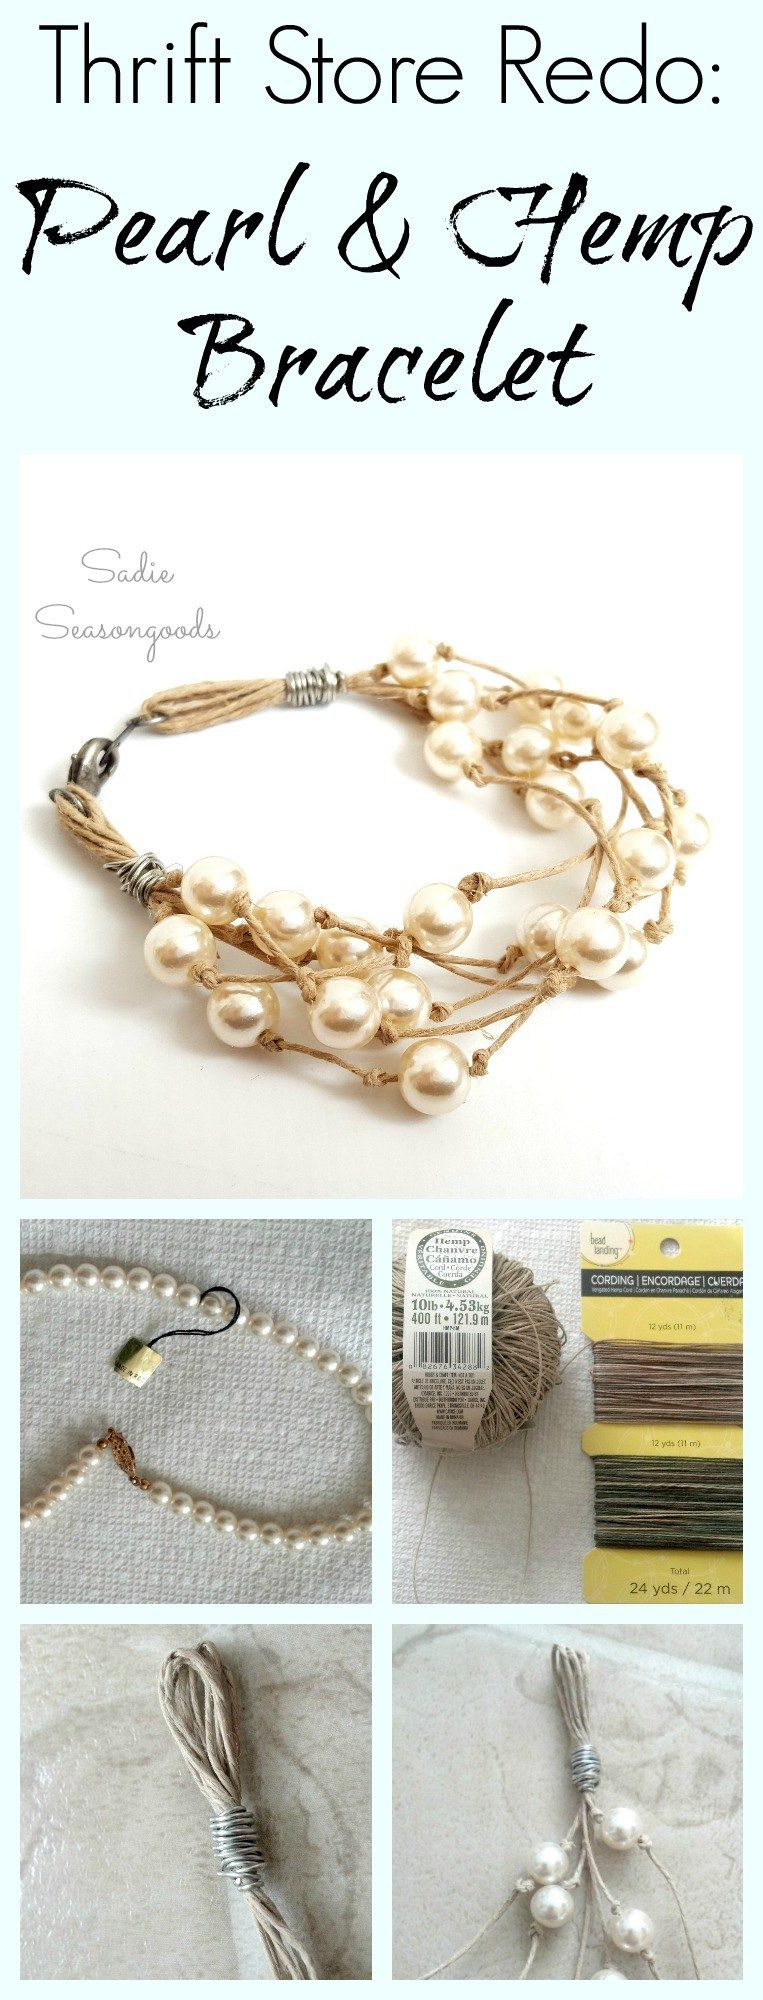 Repurposing pearls from a thrift store pearl necklace into a refashioned bracelet jewelry using hemp cord by Sadie Seasongoods / www.sadieseasongoods.com